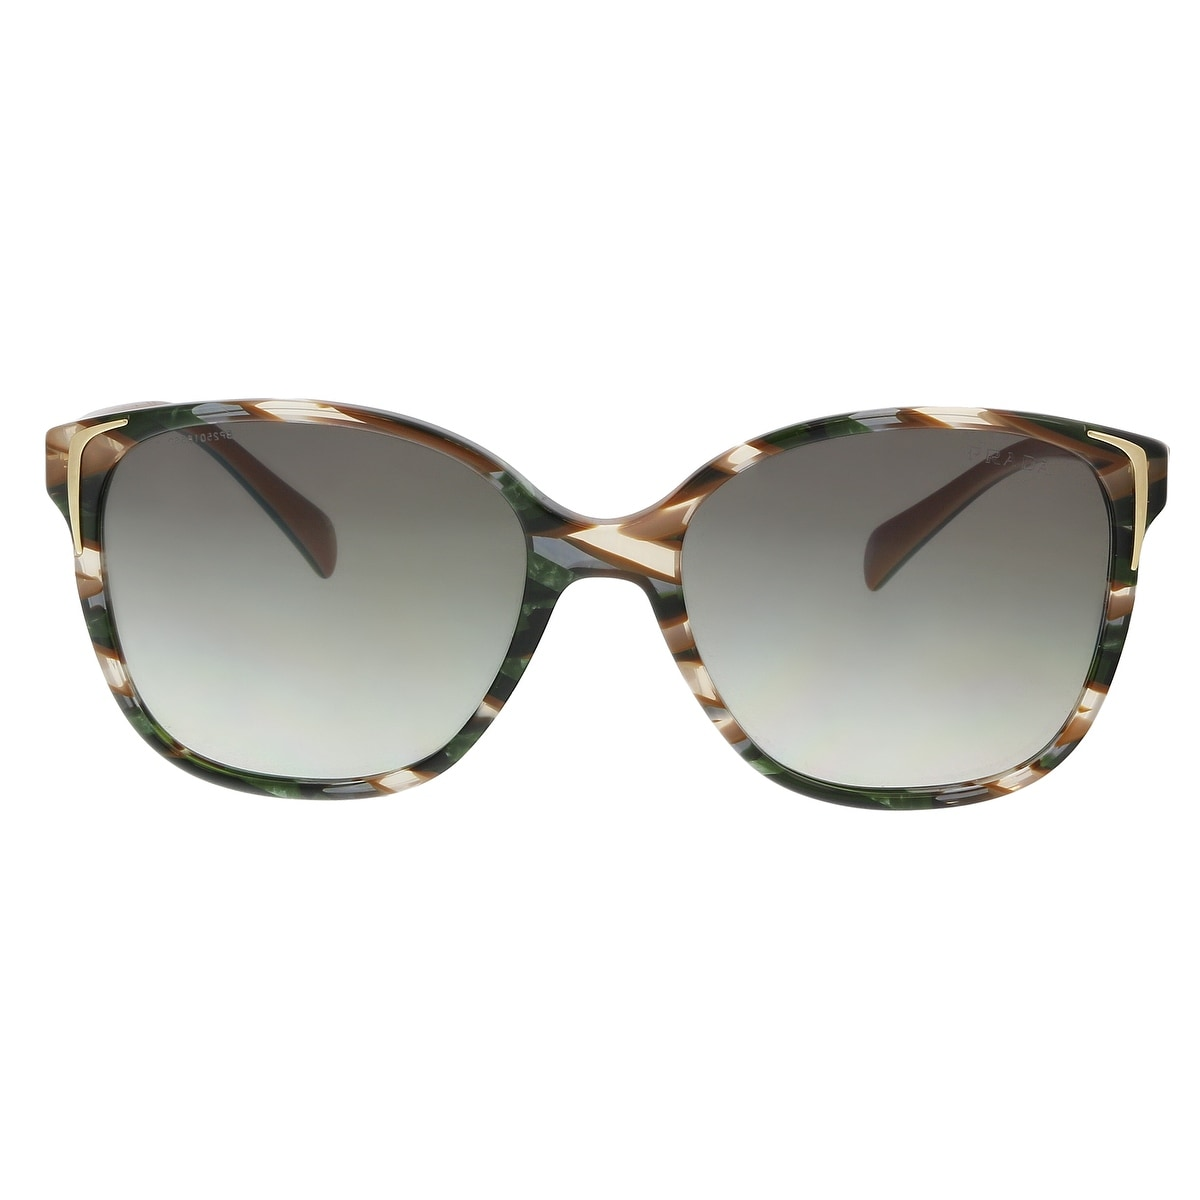 780171332a ... coupon for shop prada pr01os cxy0a7 havana green brown ear square  sunglasses 55 17 140 on